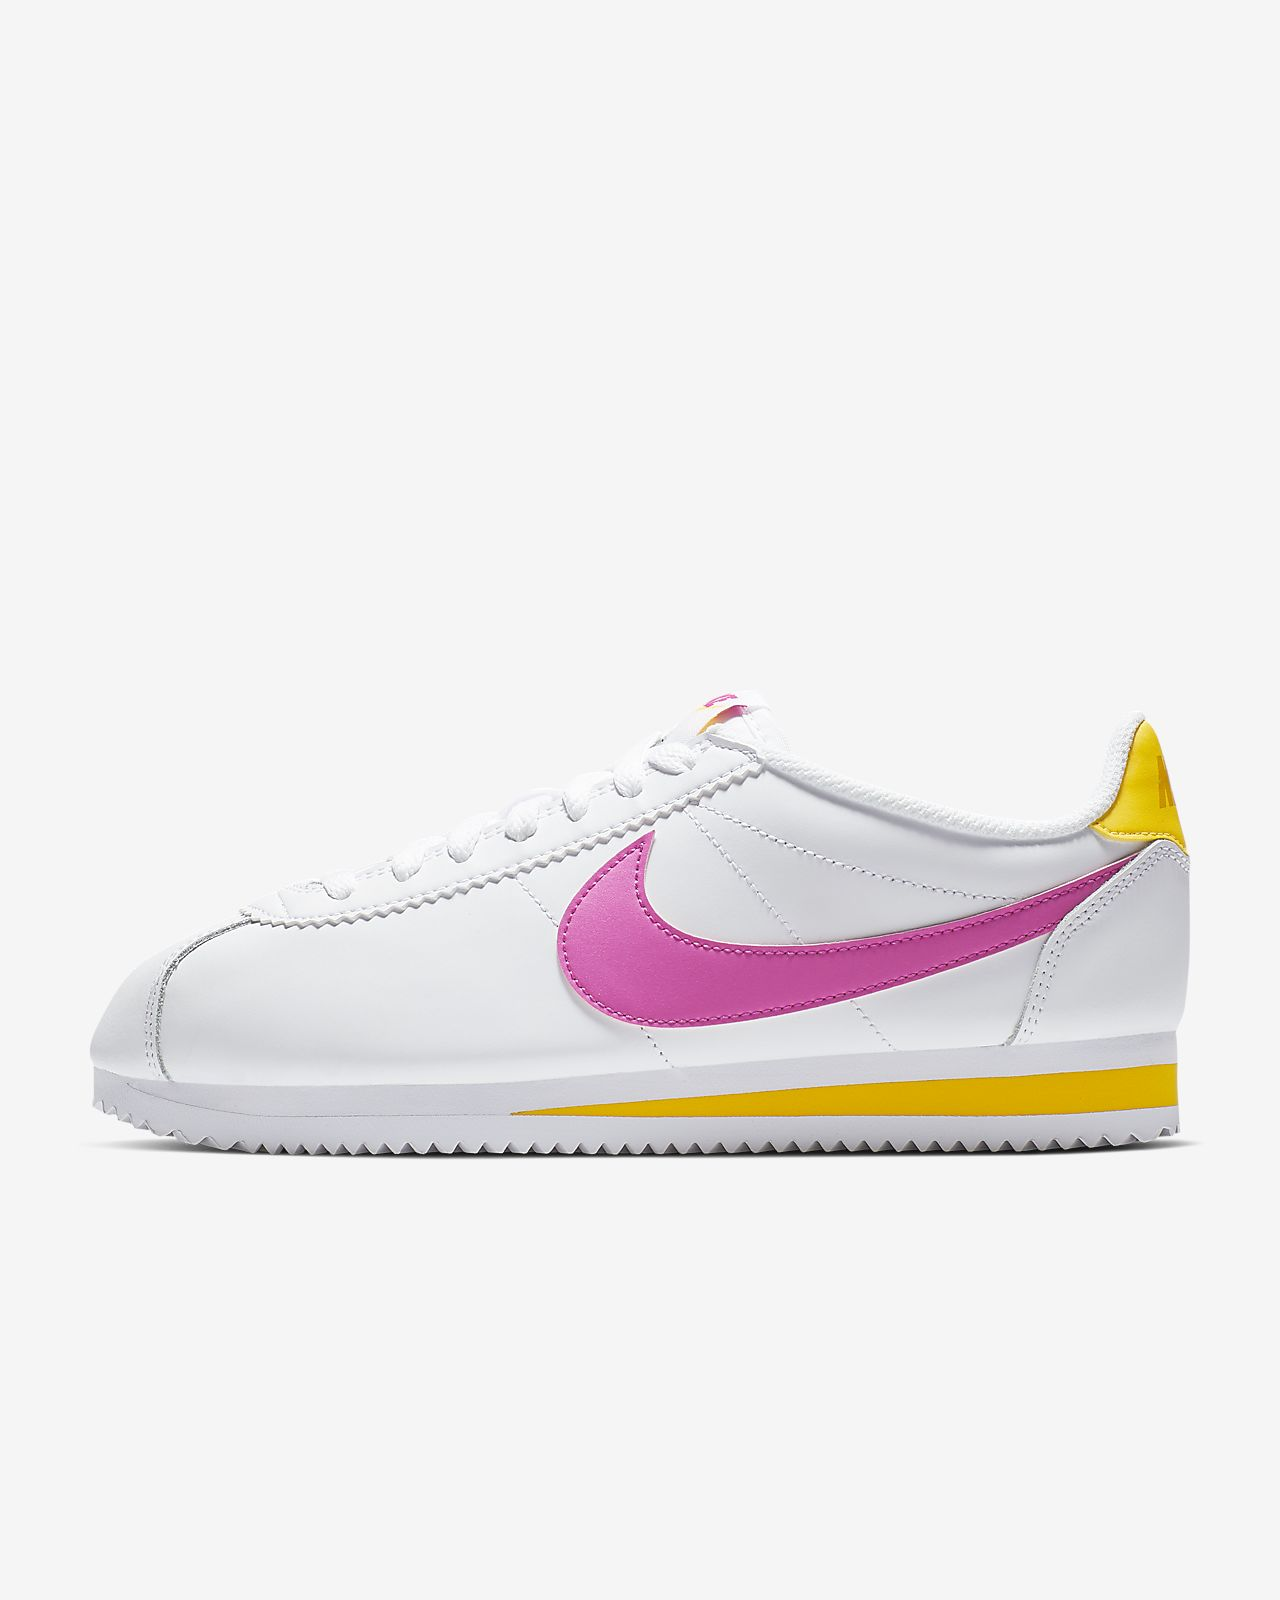 cd883b12c88 Low Resolution Nike Classic Cortez Damesschoen Nike Classic Cortez  Damesschoen